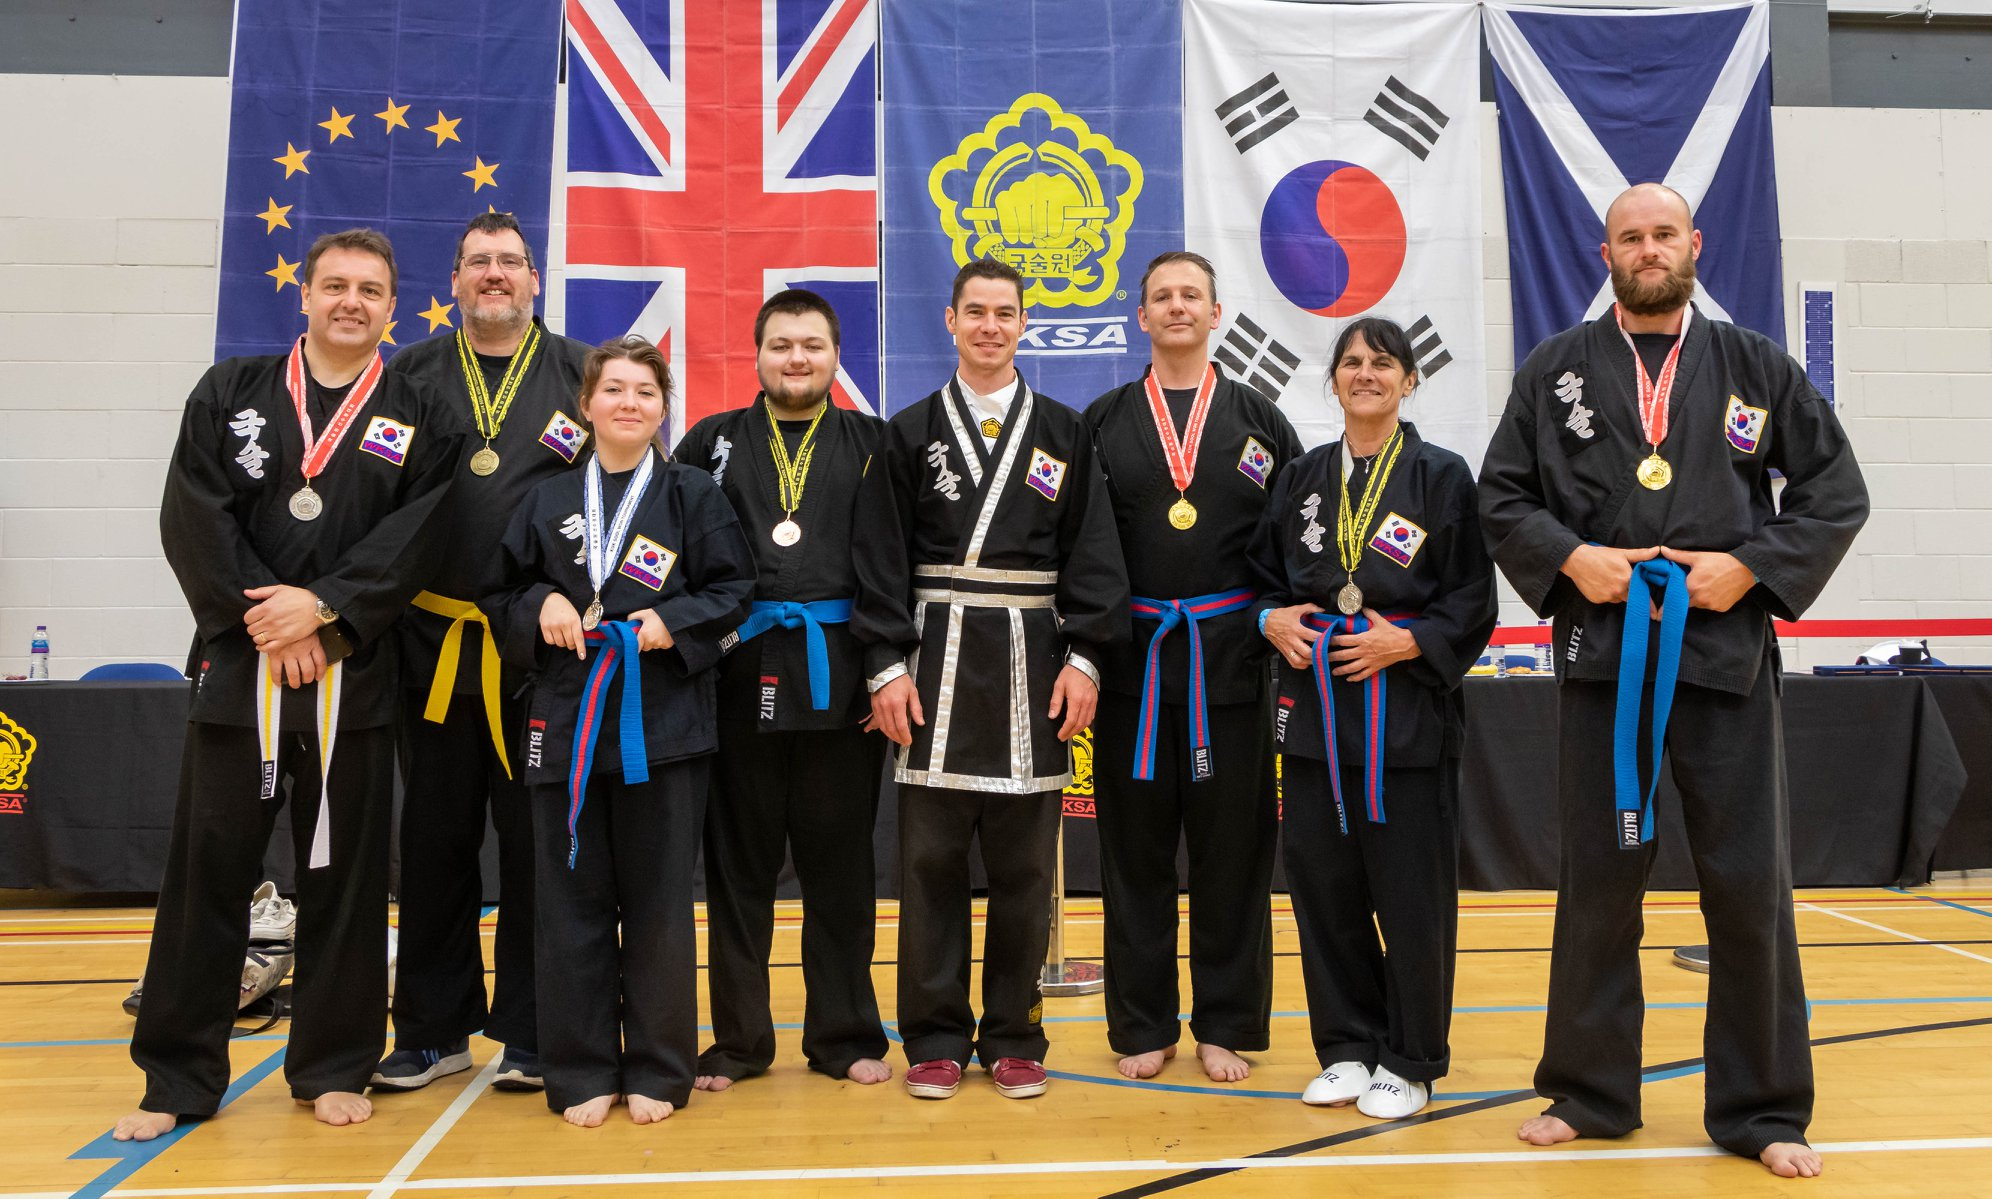 Martial arts Perth Kuk Sool Won Scotland